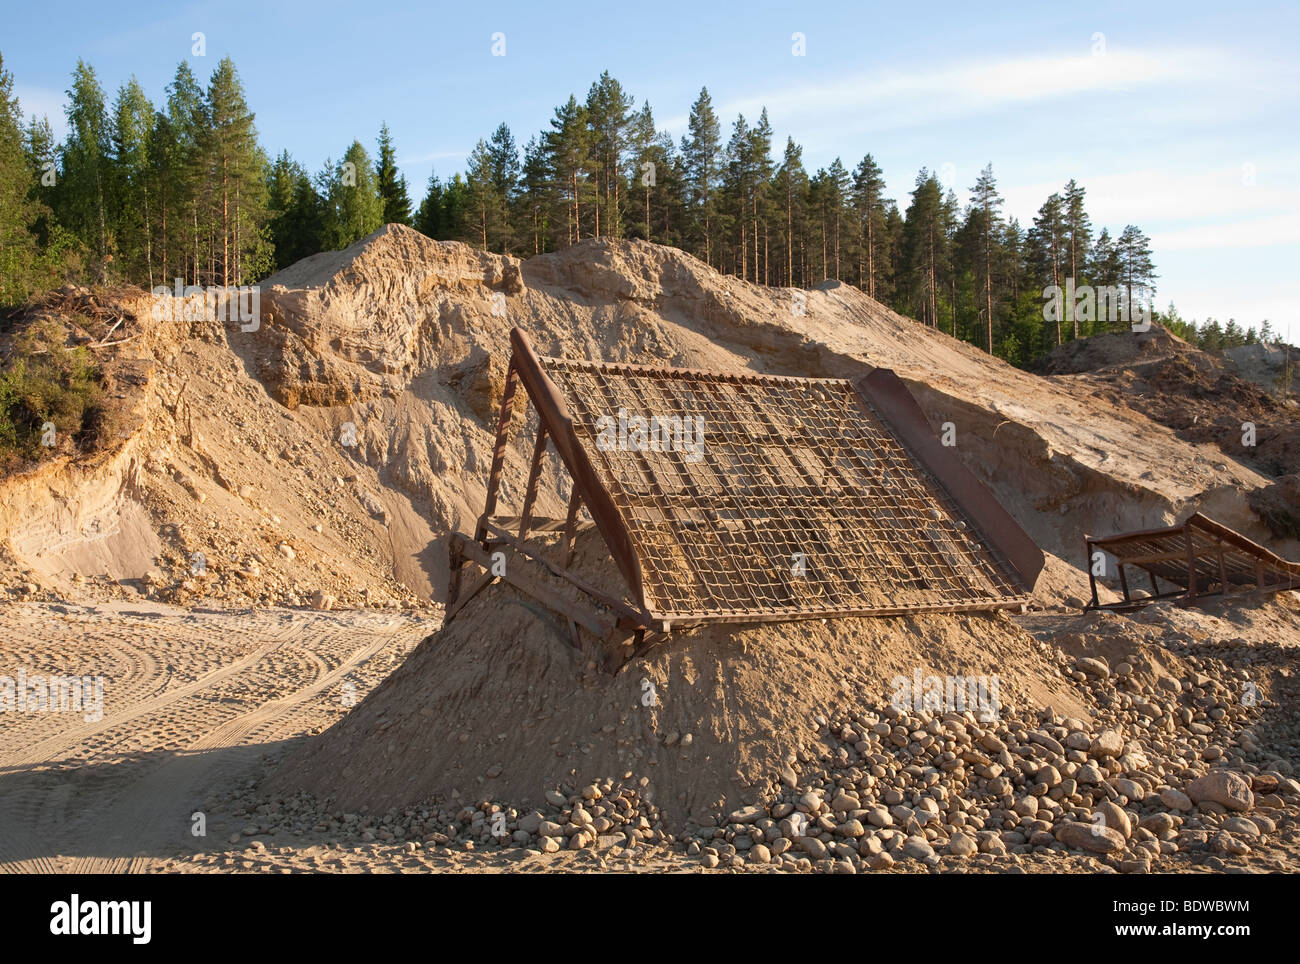 Gravel extraction area with a simple stone sieve for extracting larger stones from sand - Stock Image